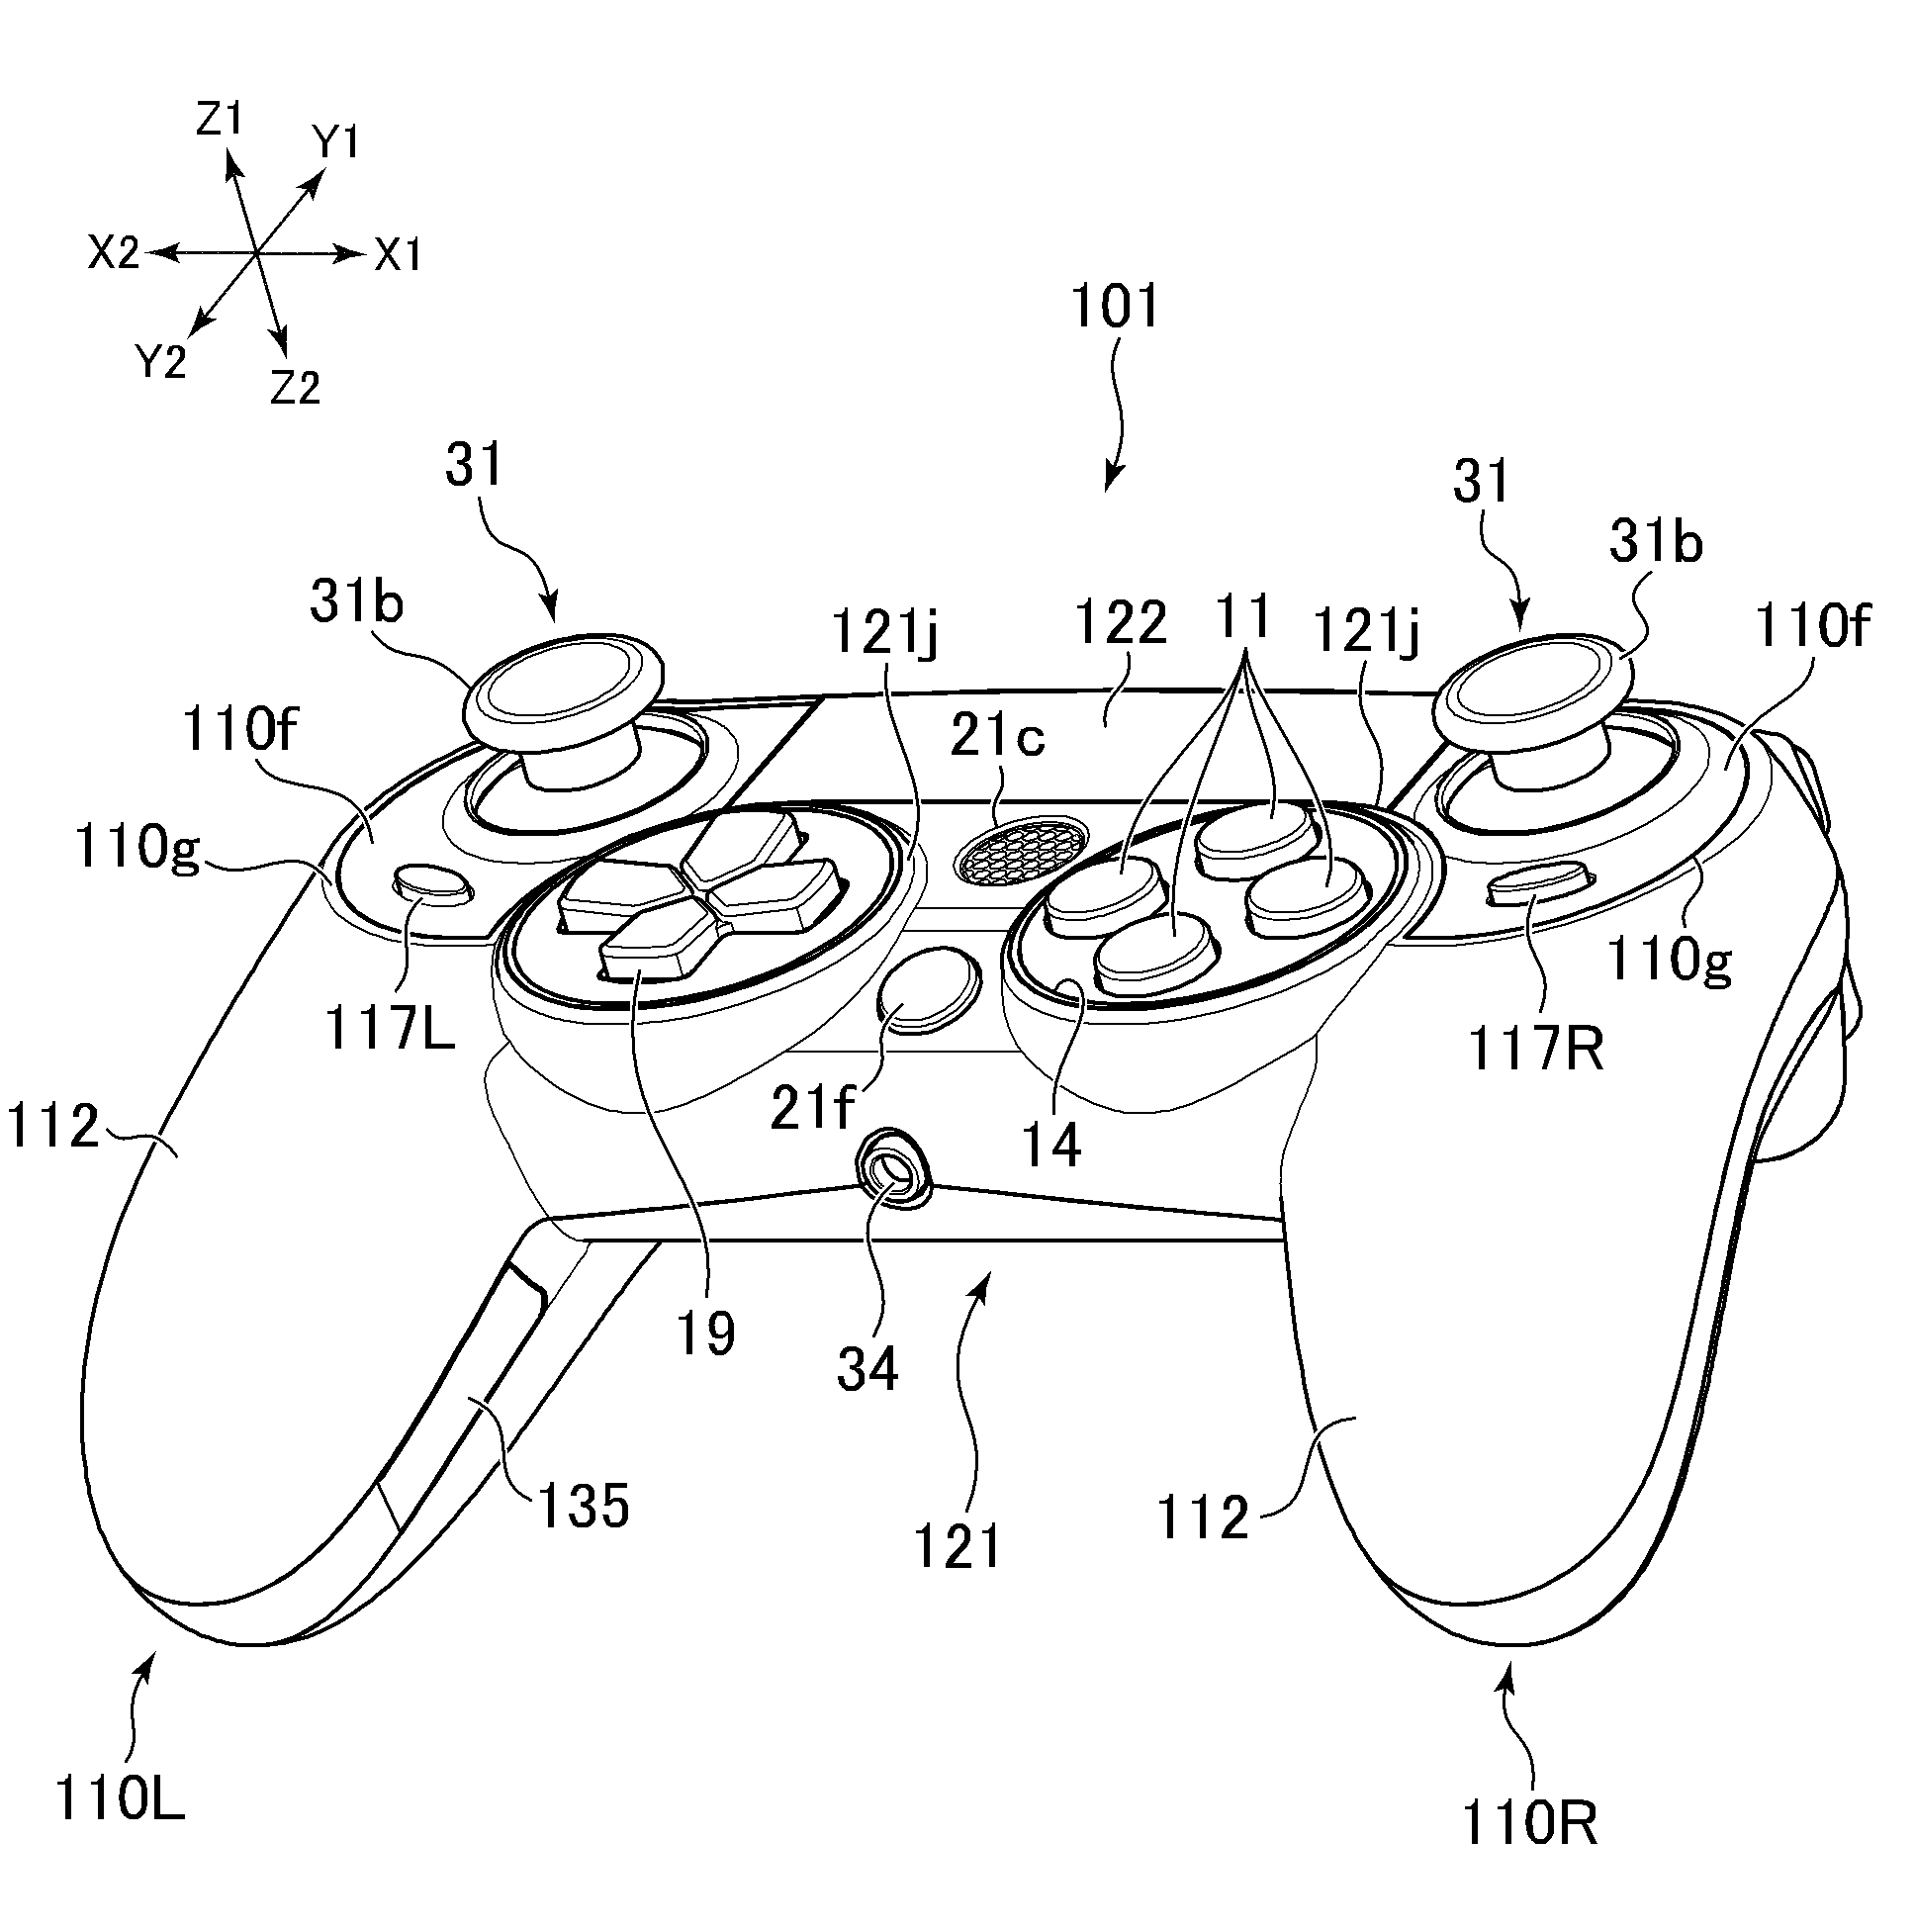 game u0026 39 n u0026 39 motion  playstation 4 controller patent shows the